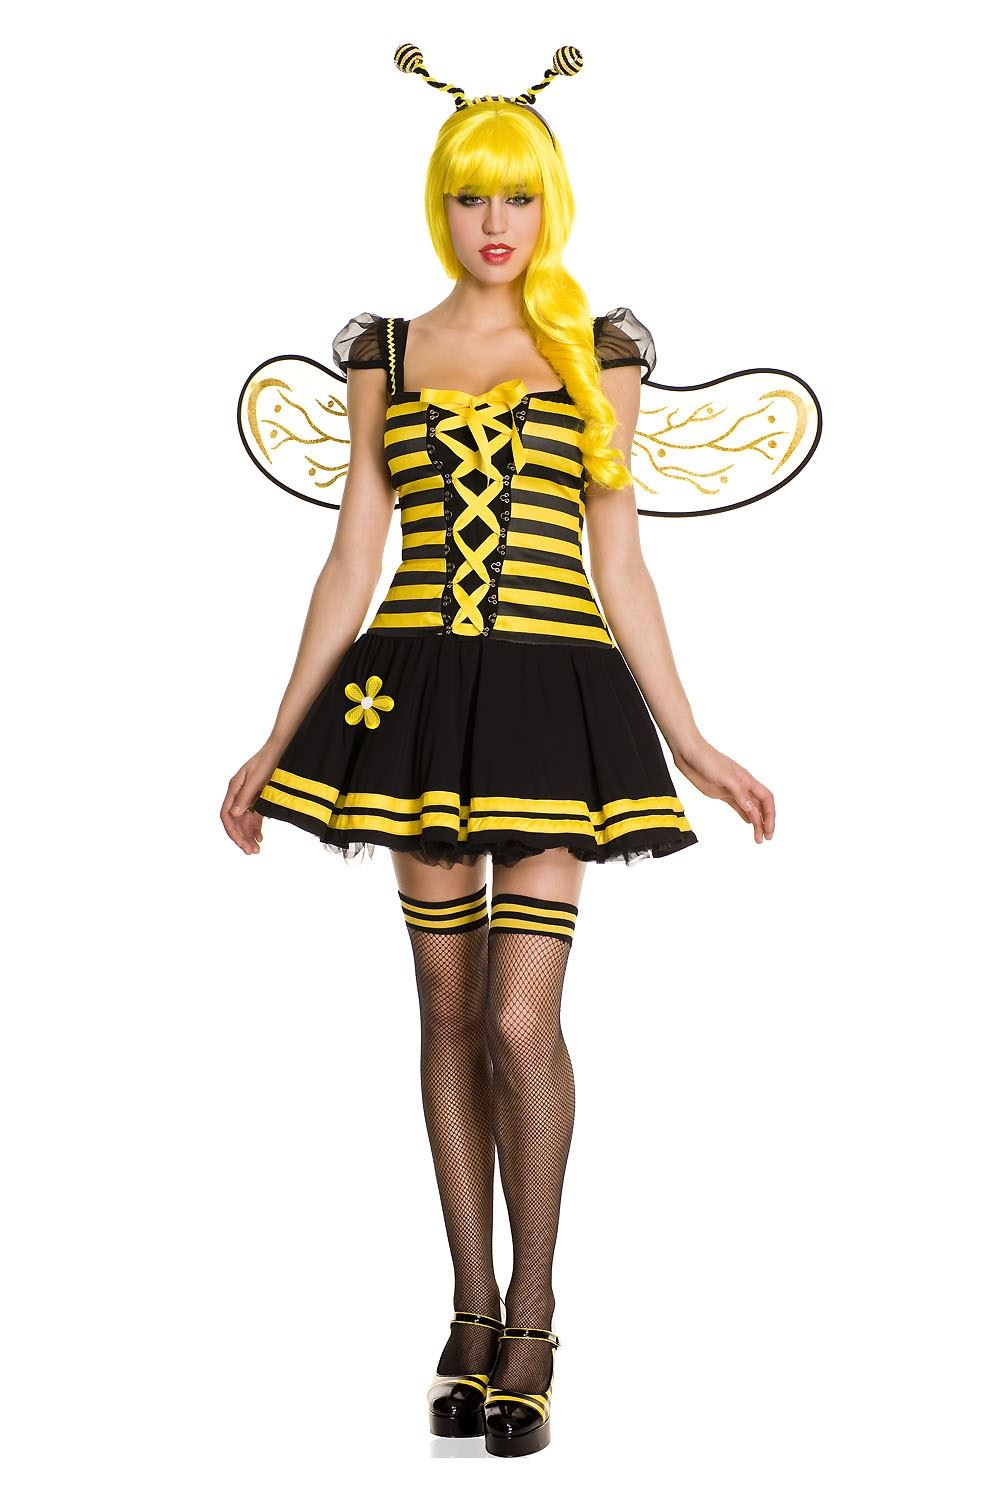 Adult Honey Bee Woman Costume ...  sc 1 st  The Costume Land & Adult Honey Bee Woman Costume   $46.99   The Costume Land